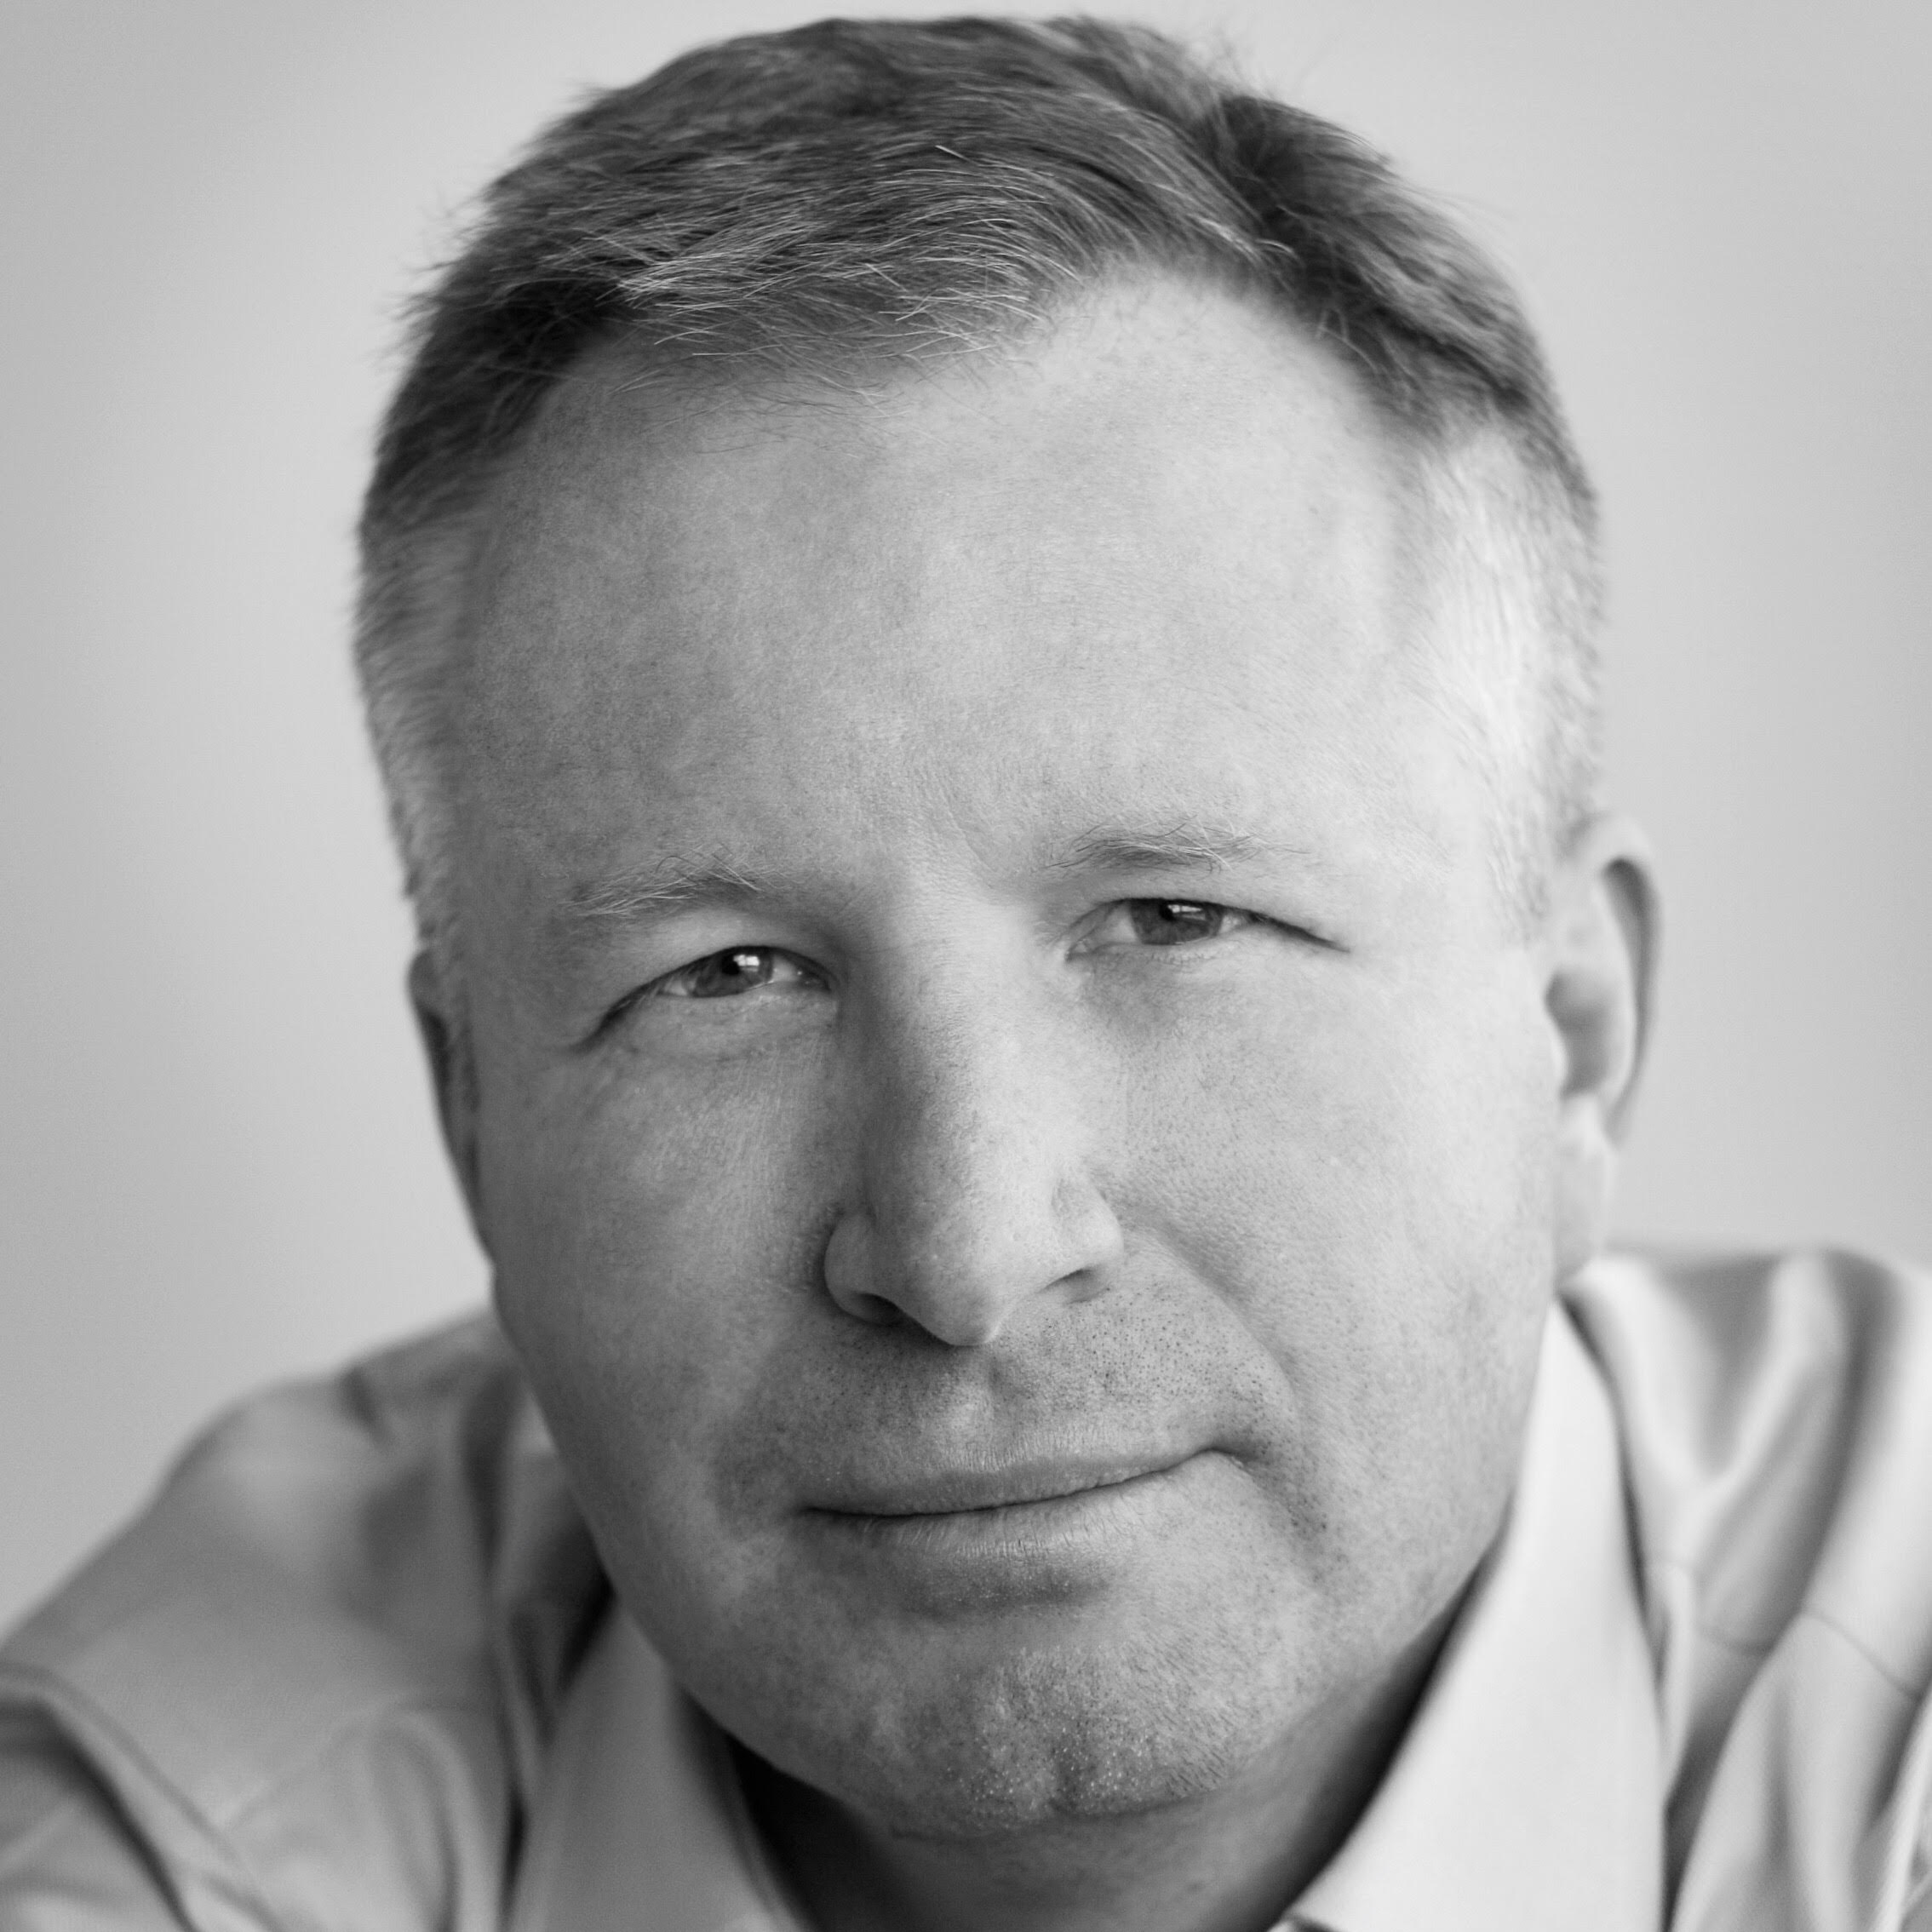 Ron MartinCEO - BACKGROUND:CEO AT PAYSAFE GROUP PLCEIR AT BAIN CAPITAL VENTURESSVP / GM AT ALTISOURCE